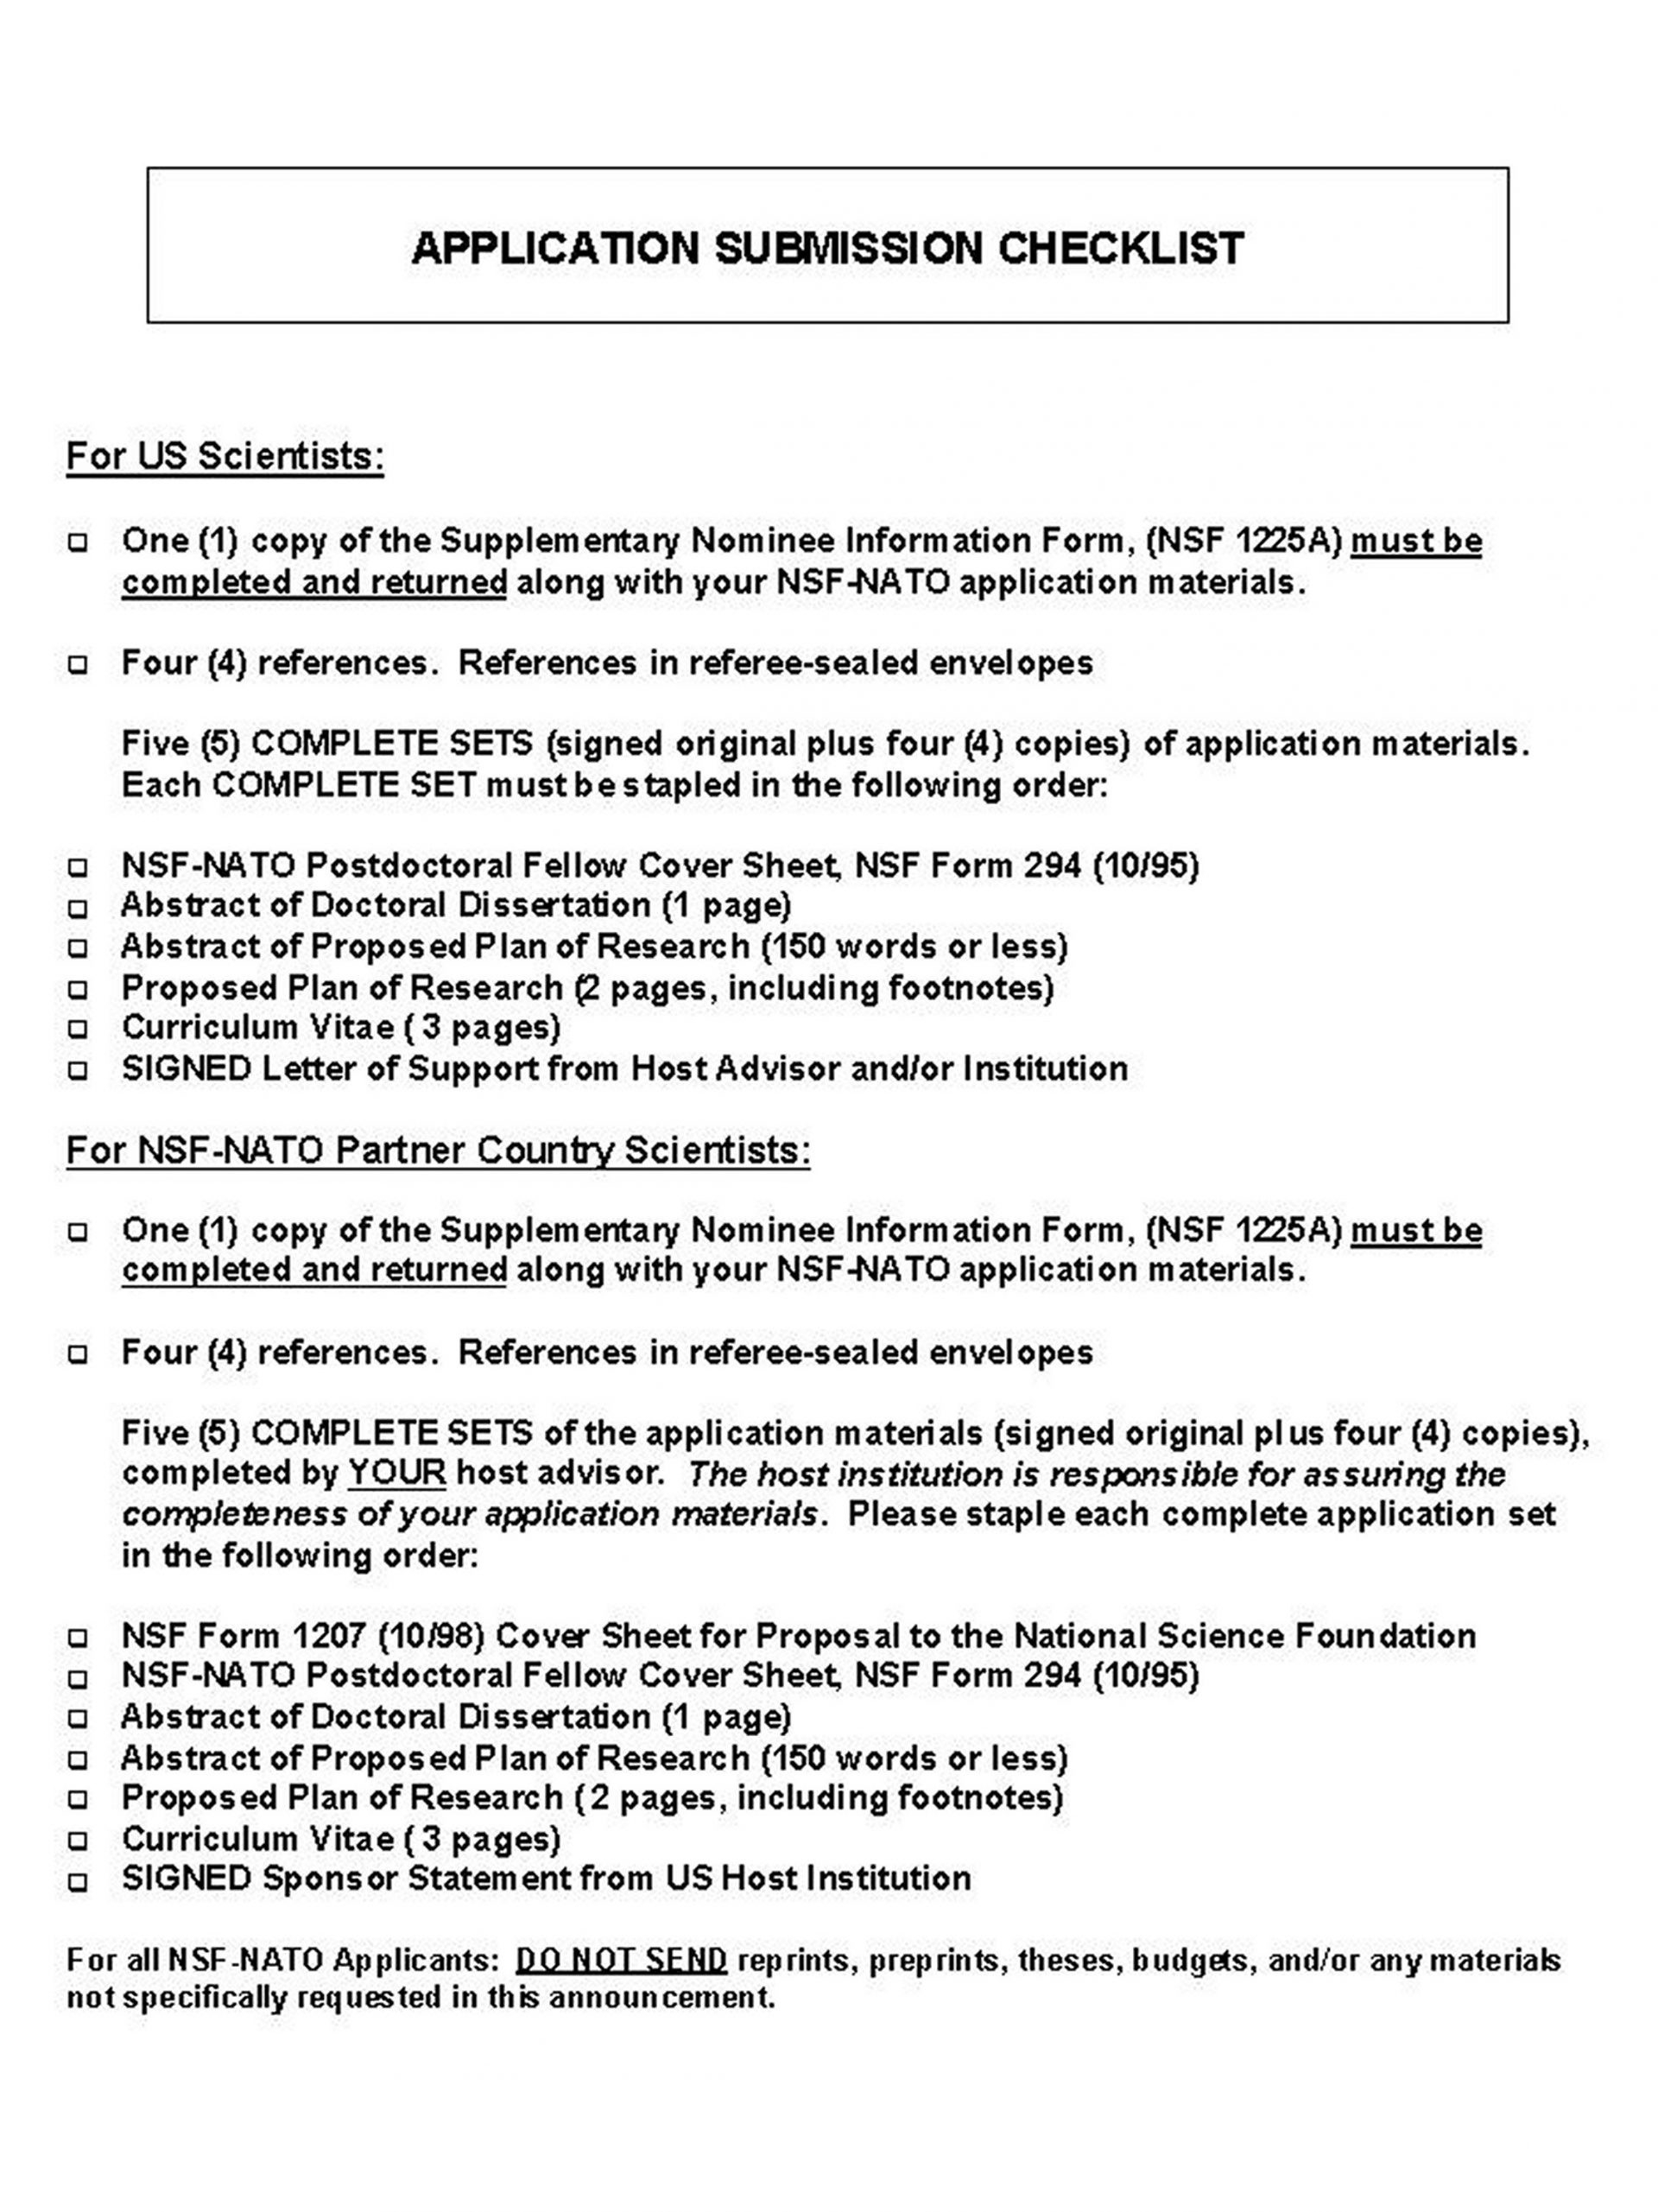 nsf letter of support template example-nsf letter of support format save nsf proposal letter intent sample 5-n